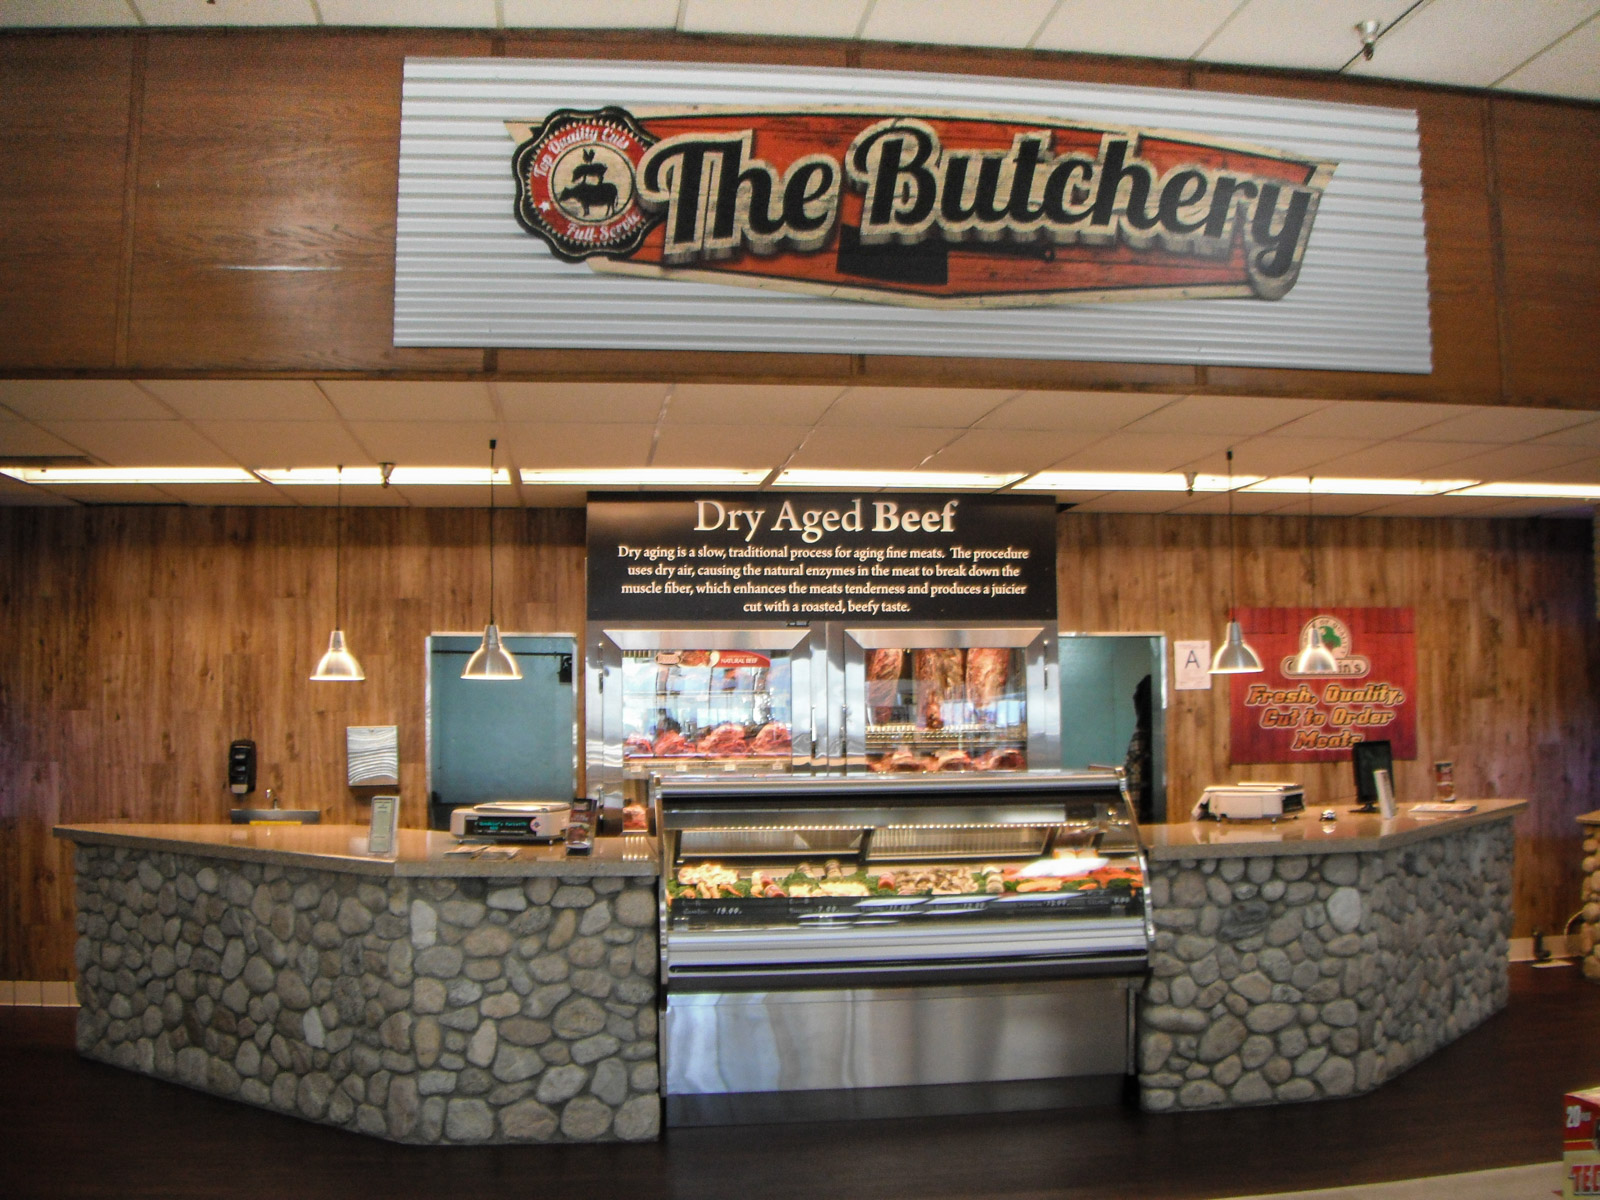 Goodwins Market - The Butchery Meat Counter